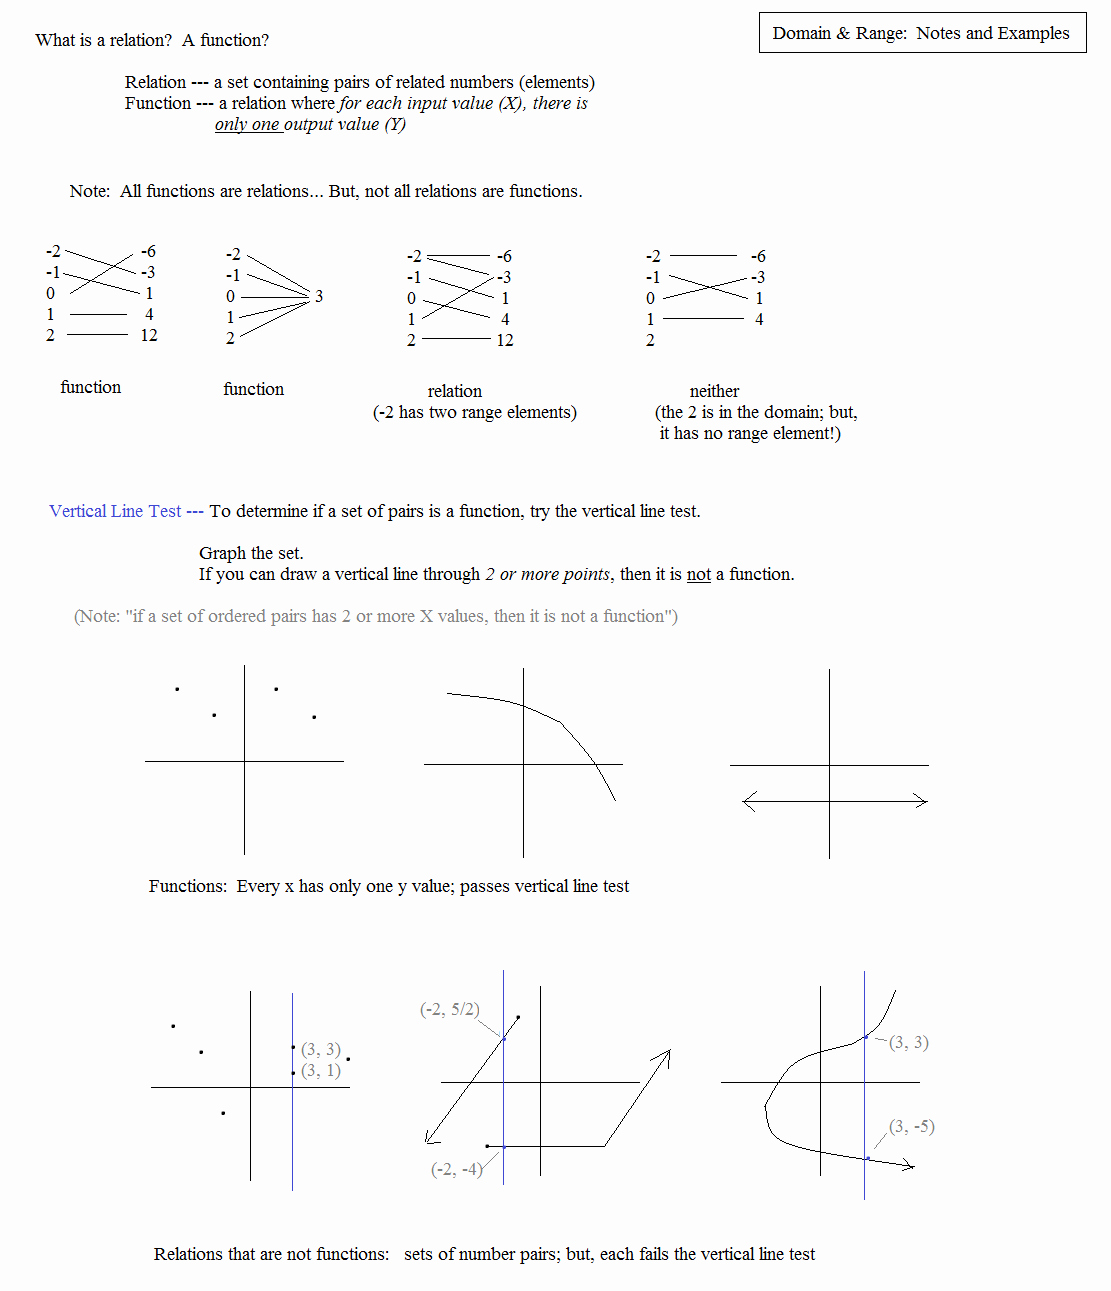 Domain and Range Worksheet Lovely Functions Worksheet Domain Range and Function Notation